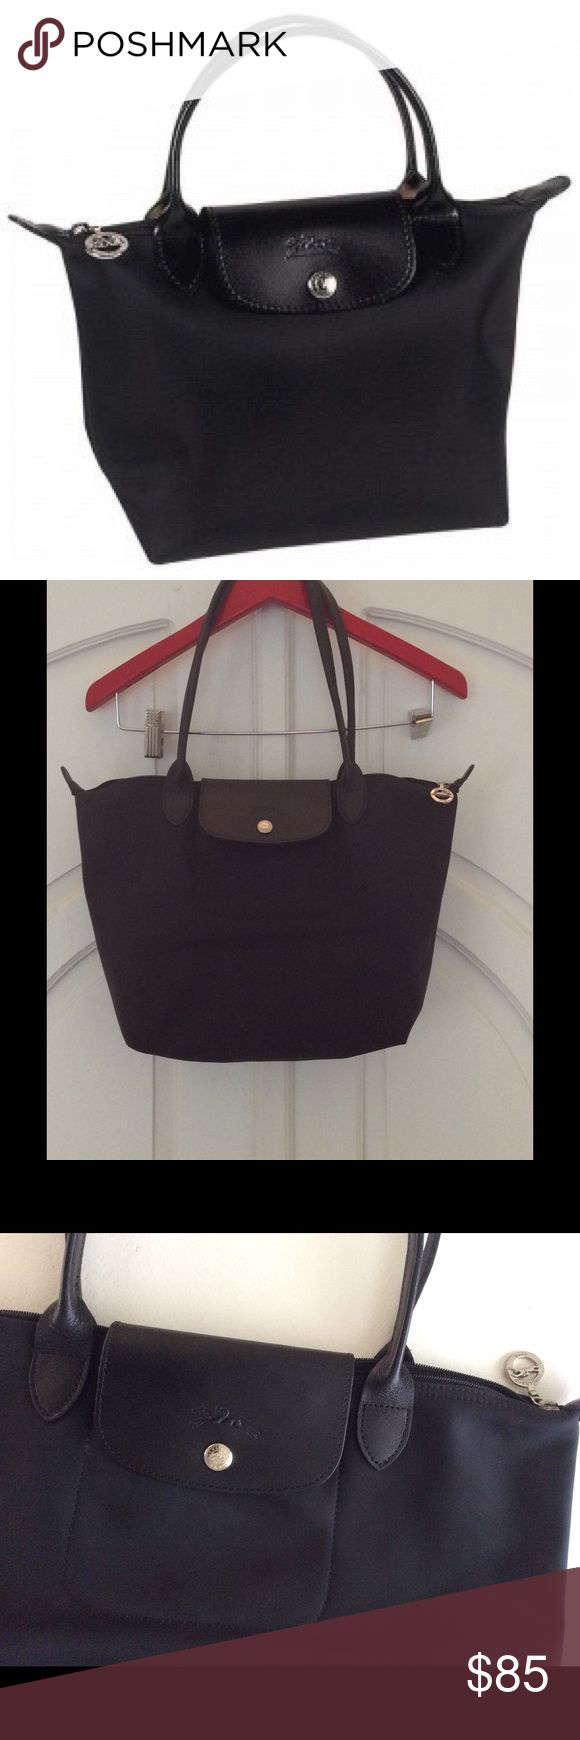 Longchamp Modele Depose Longchamp Modele Depose  Excellent Condition,14.5 inches across/11 inches height Longchamp Bags Totes